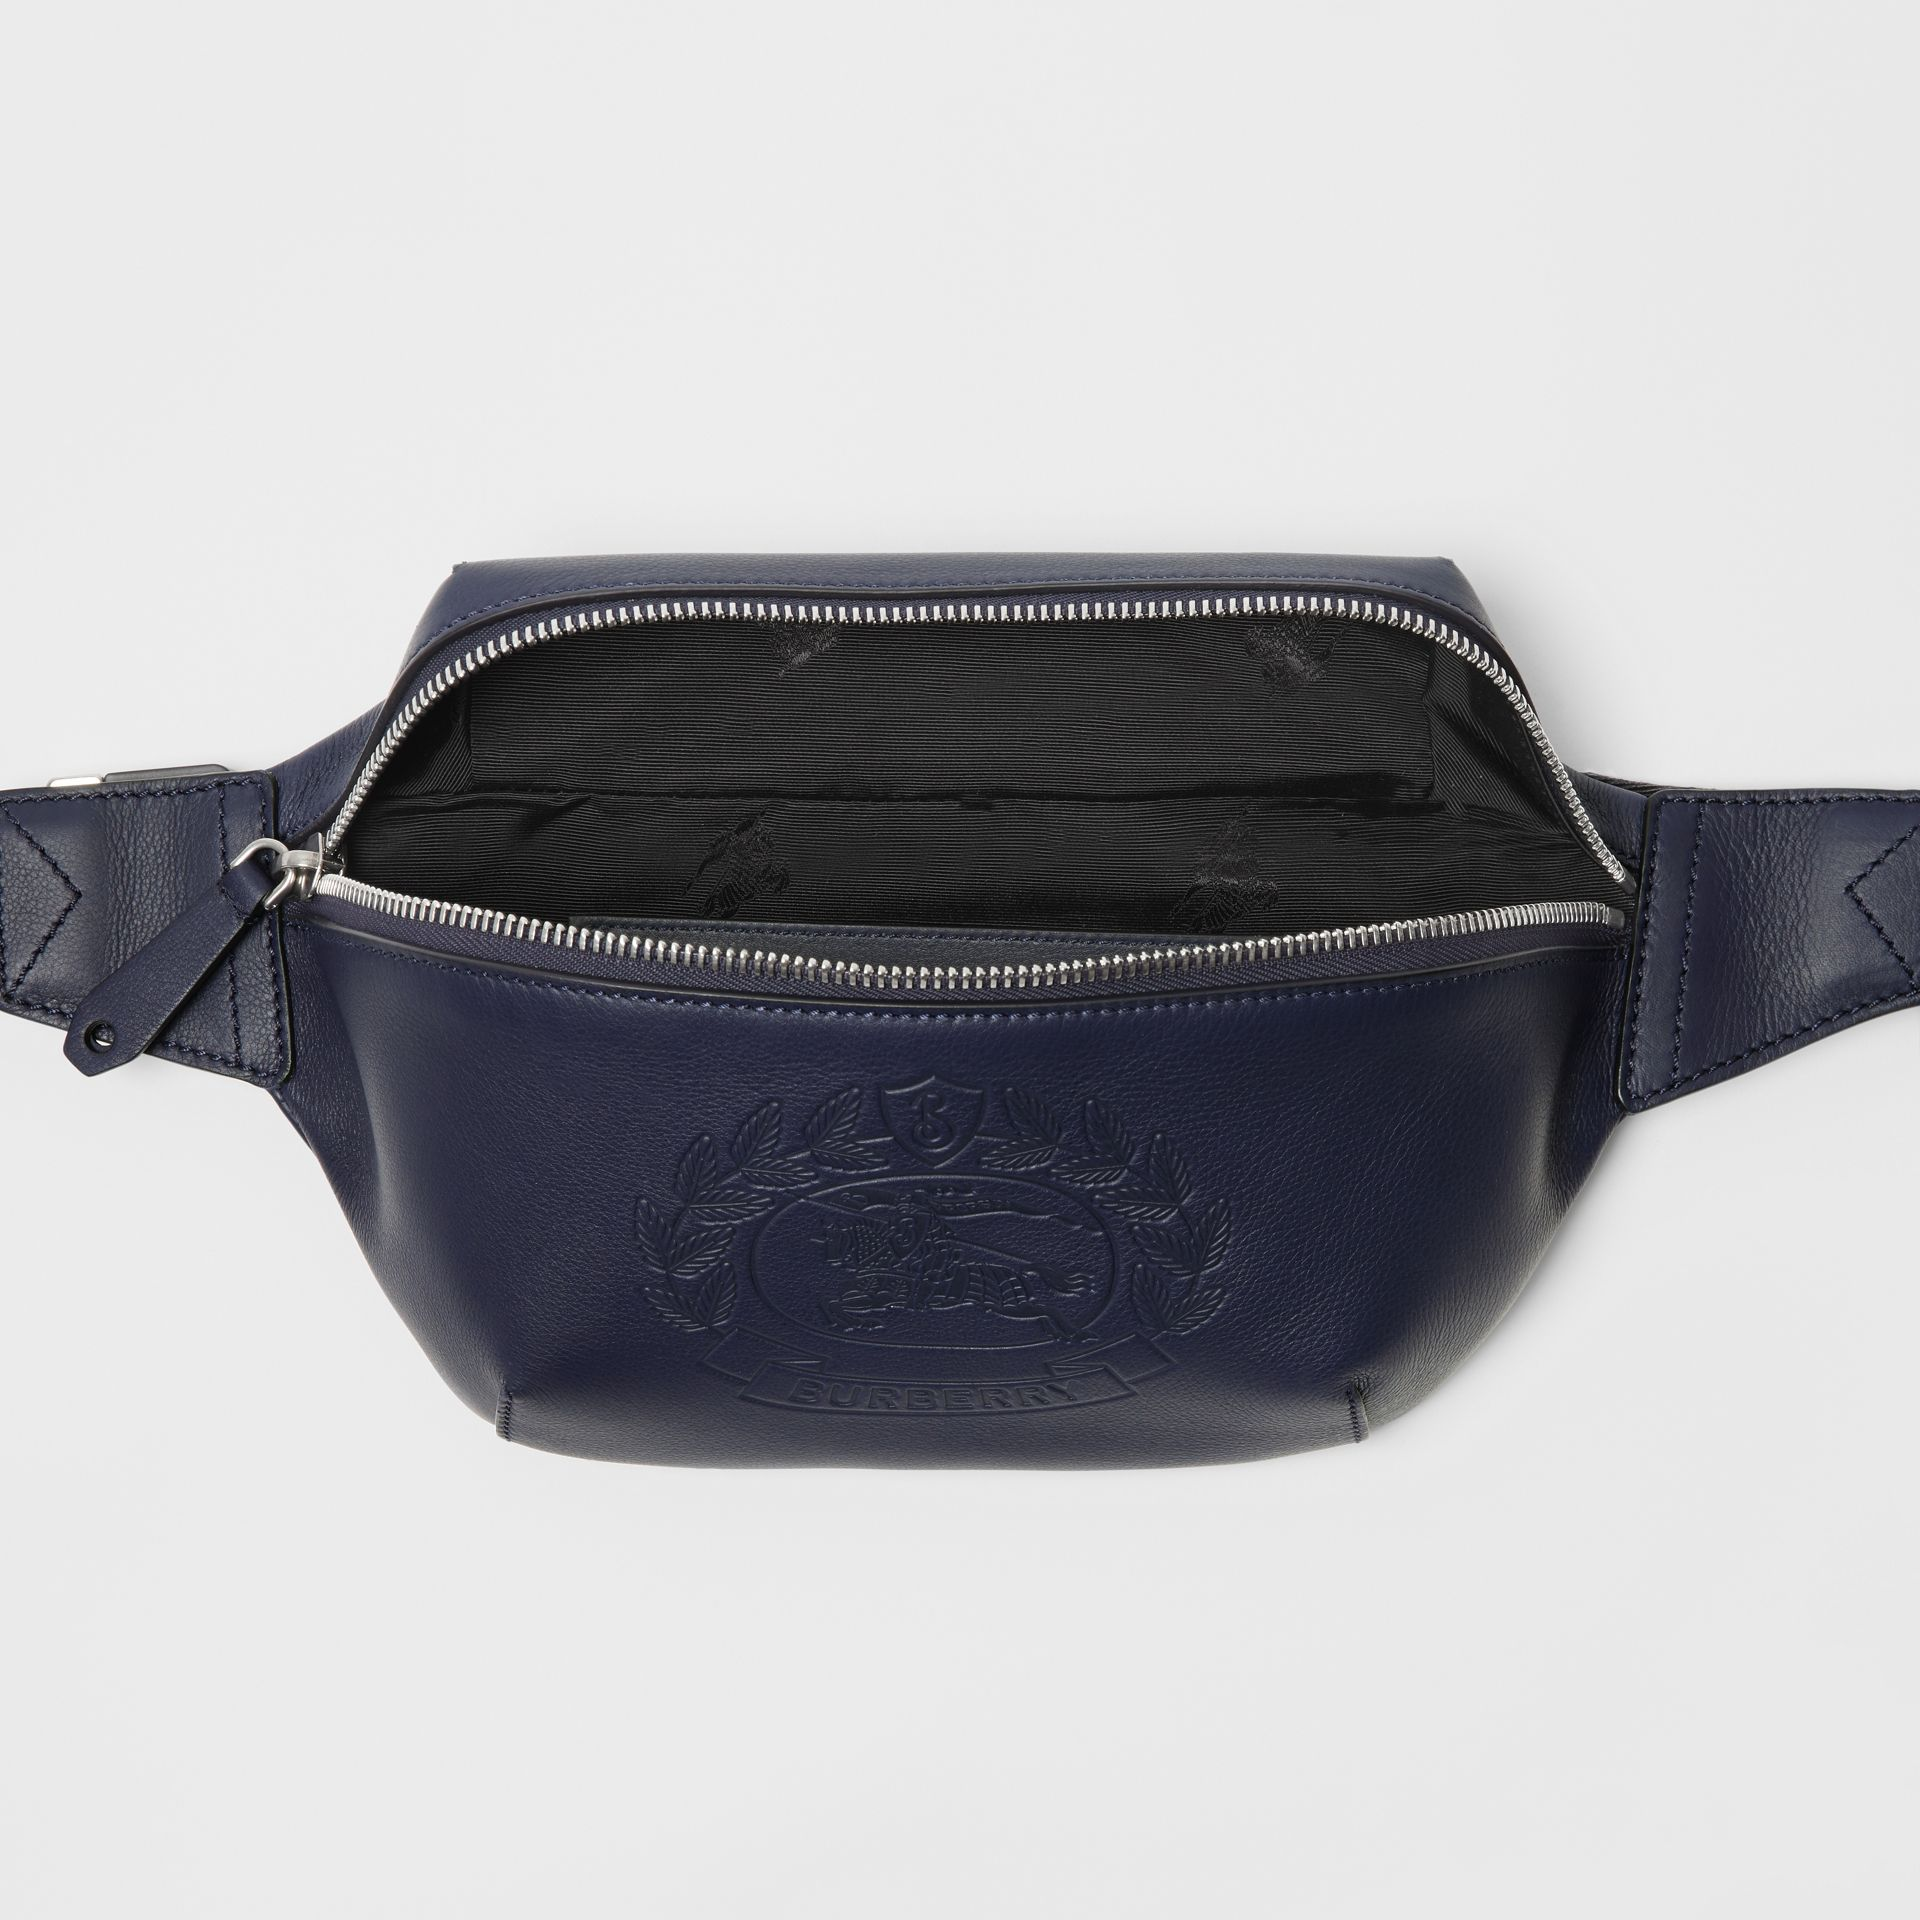 Medium Embossed Crest Leather Bum Bag in Regency Blue | Burberry - gallery image 5